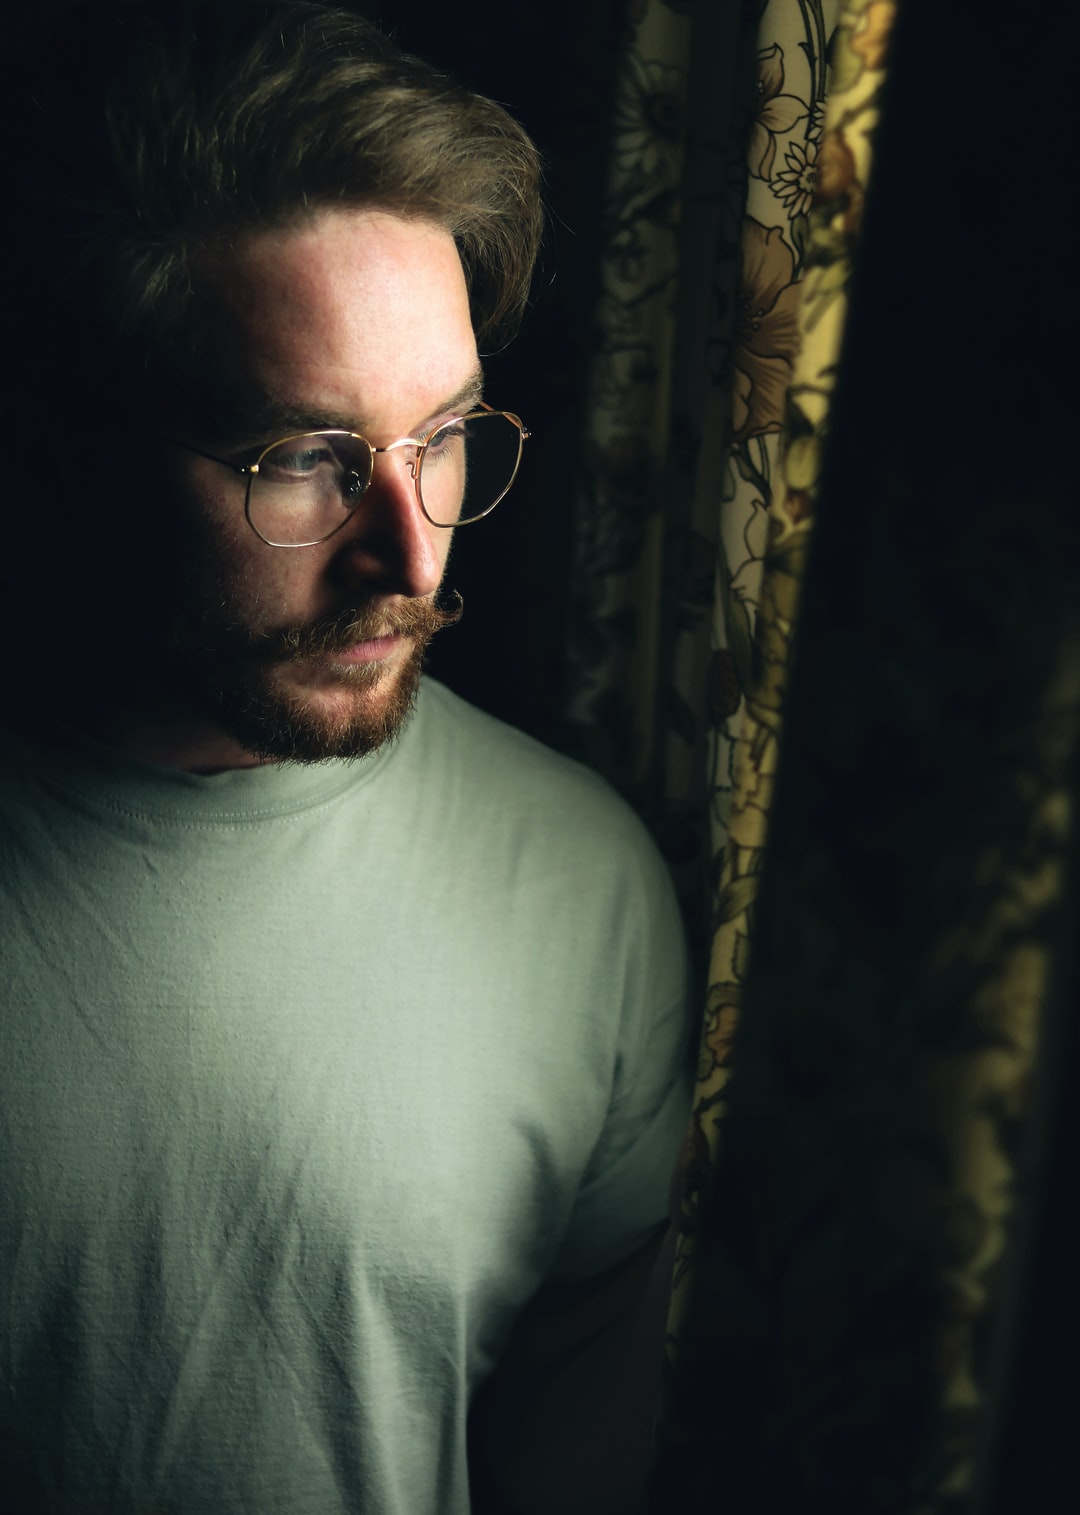 Man hiding behind curtain looking through the window with light coming through. vintage tones with retro moustache and wire frame glasses